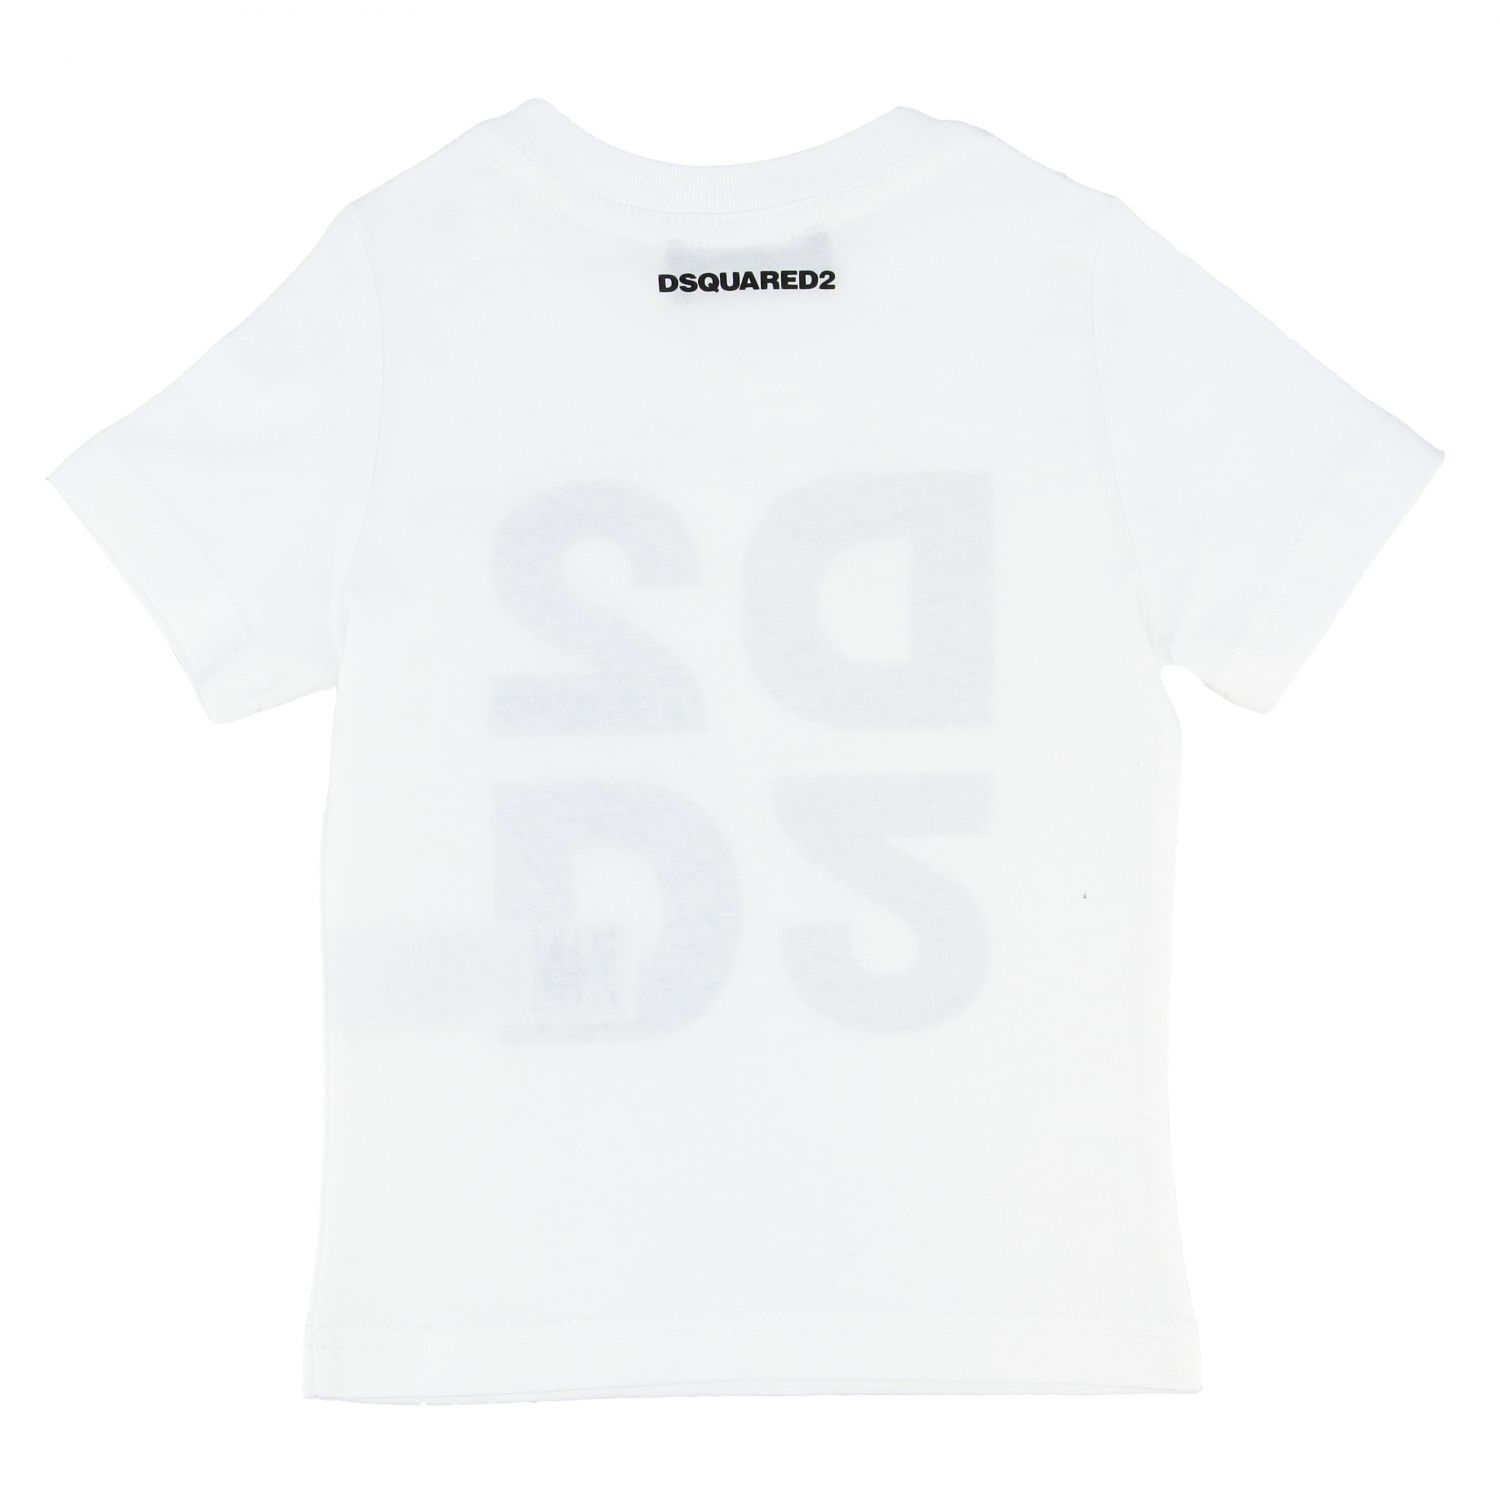 Dsquared2 Junior short-sleeved T-shirt with logo white 2